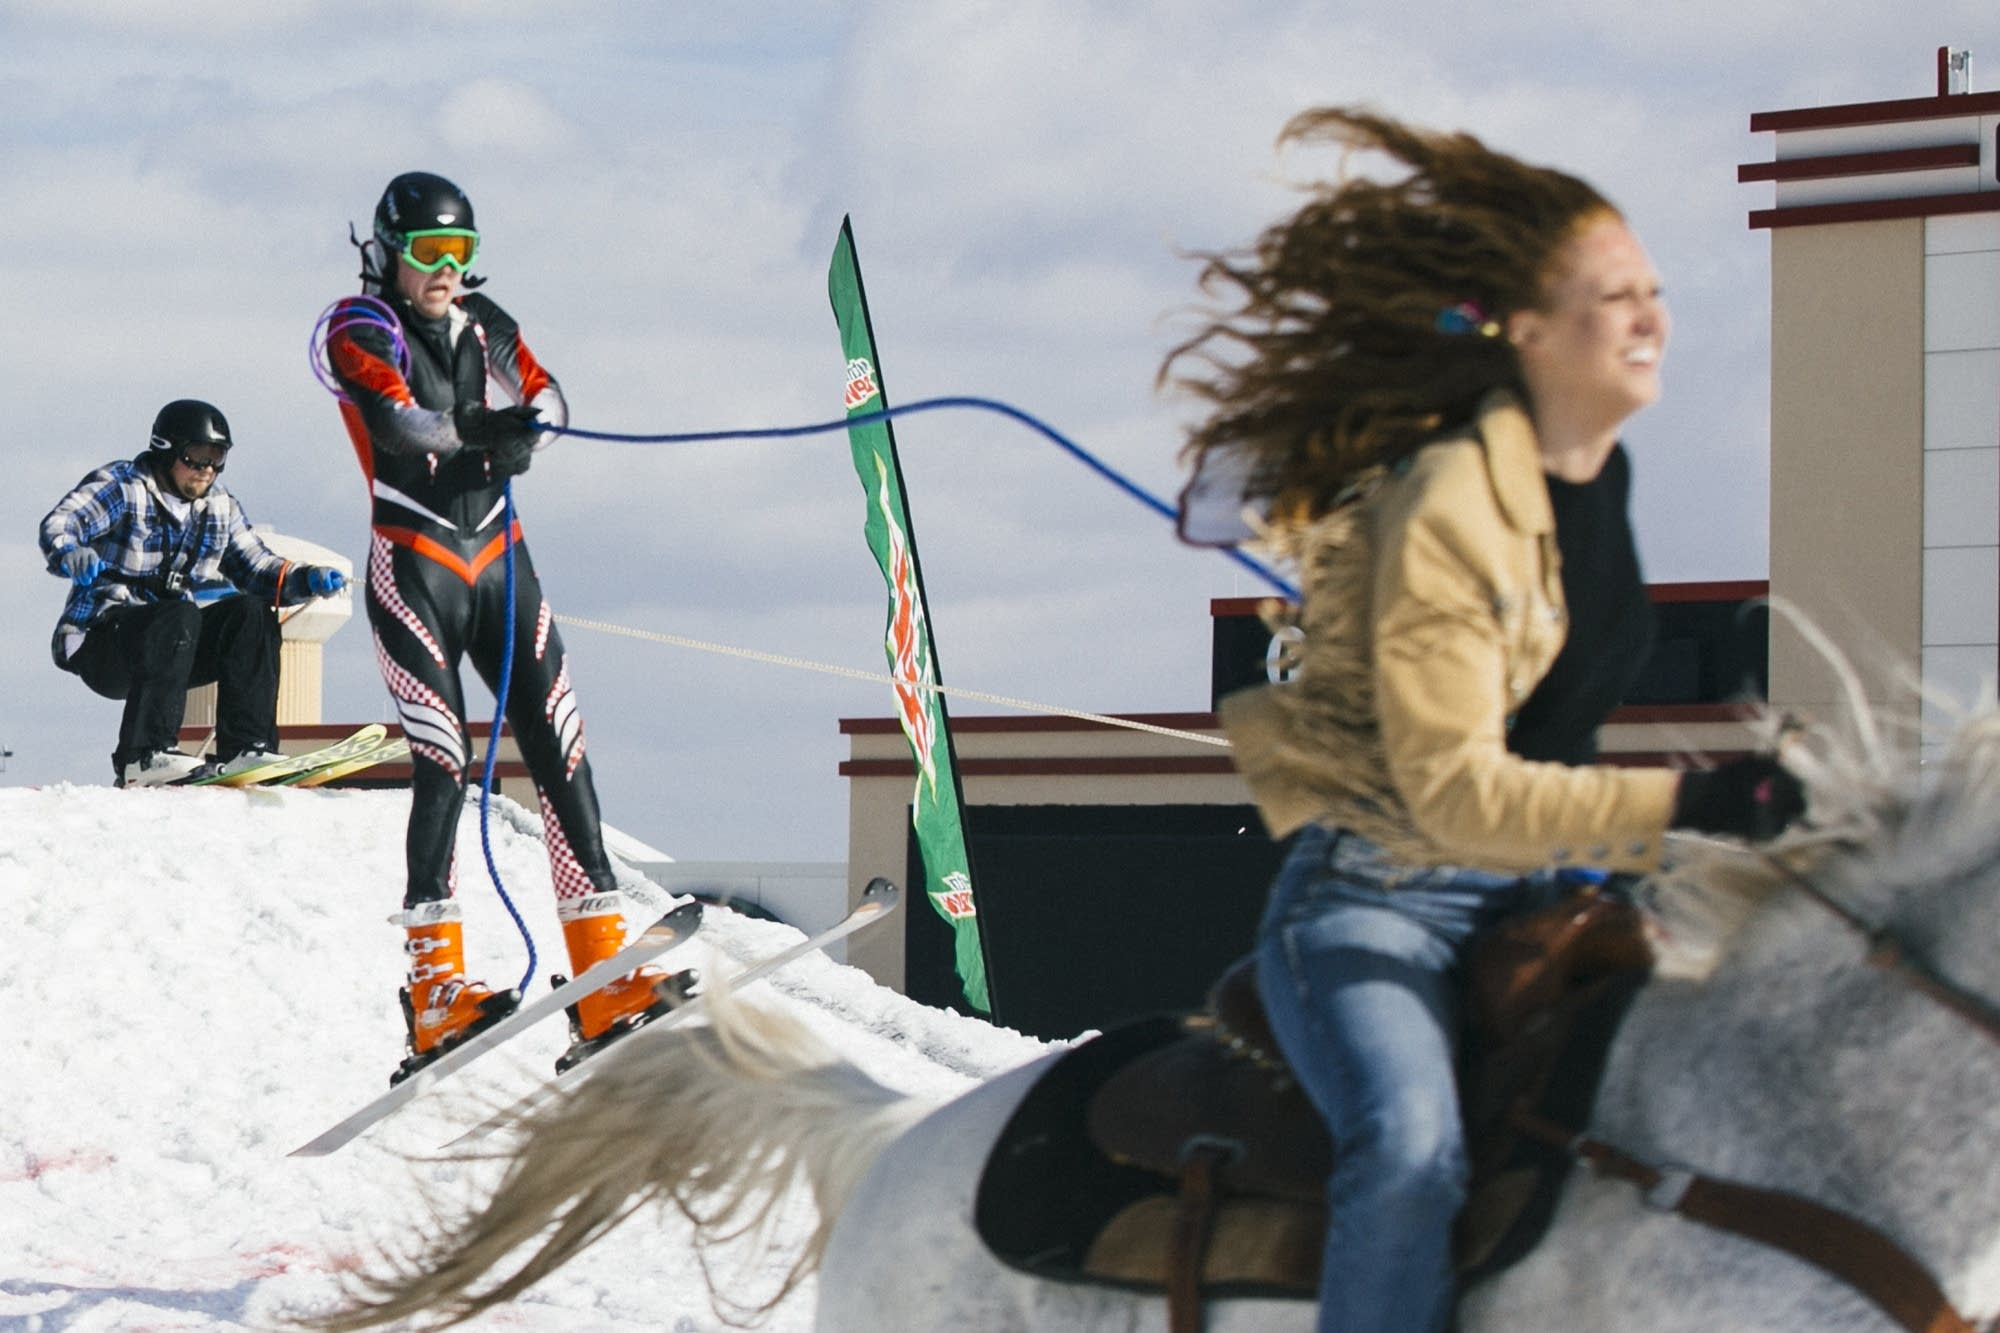 Riders pulls their skiers over a jump in the course.